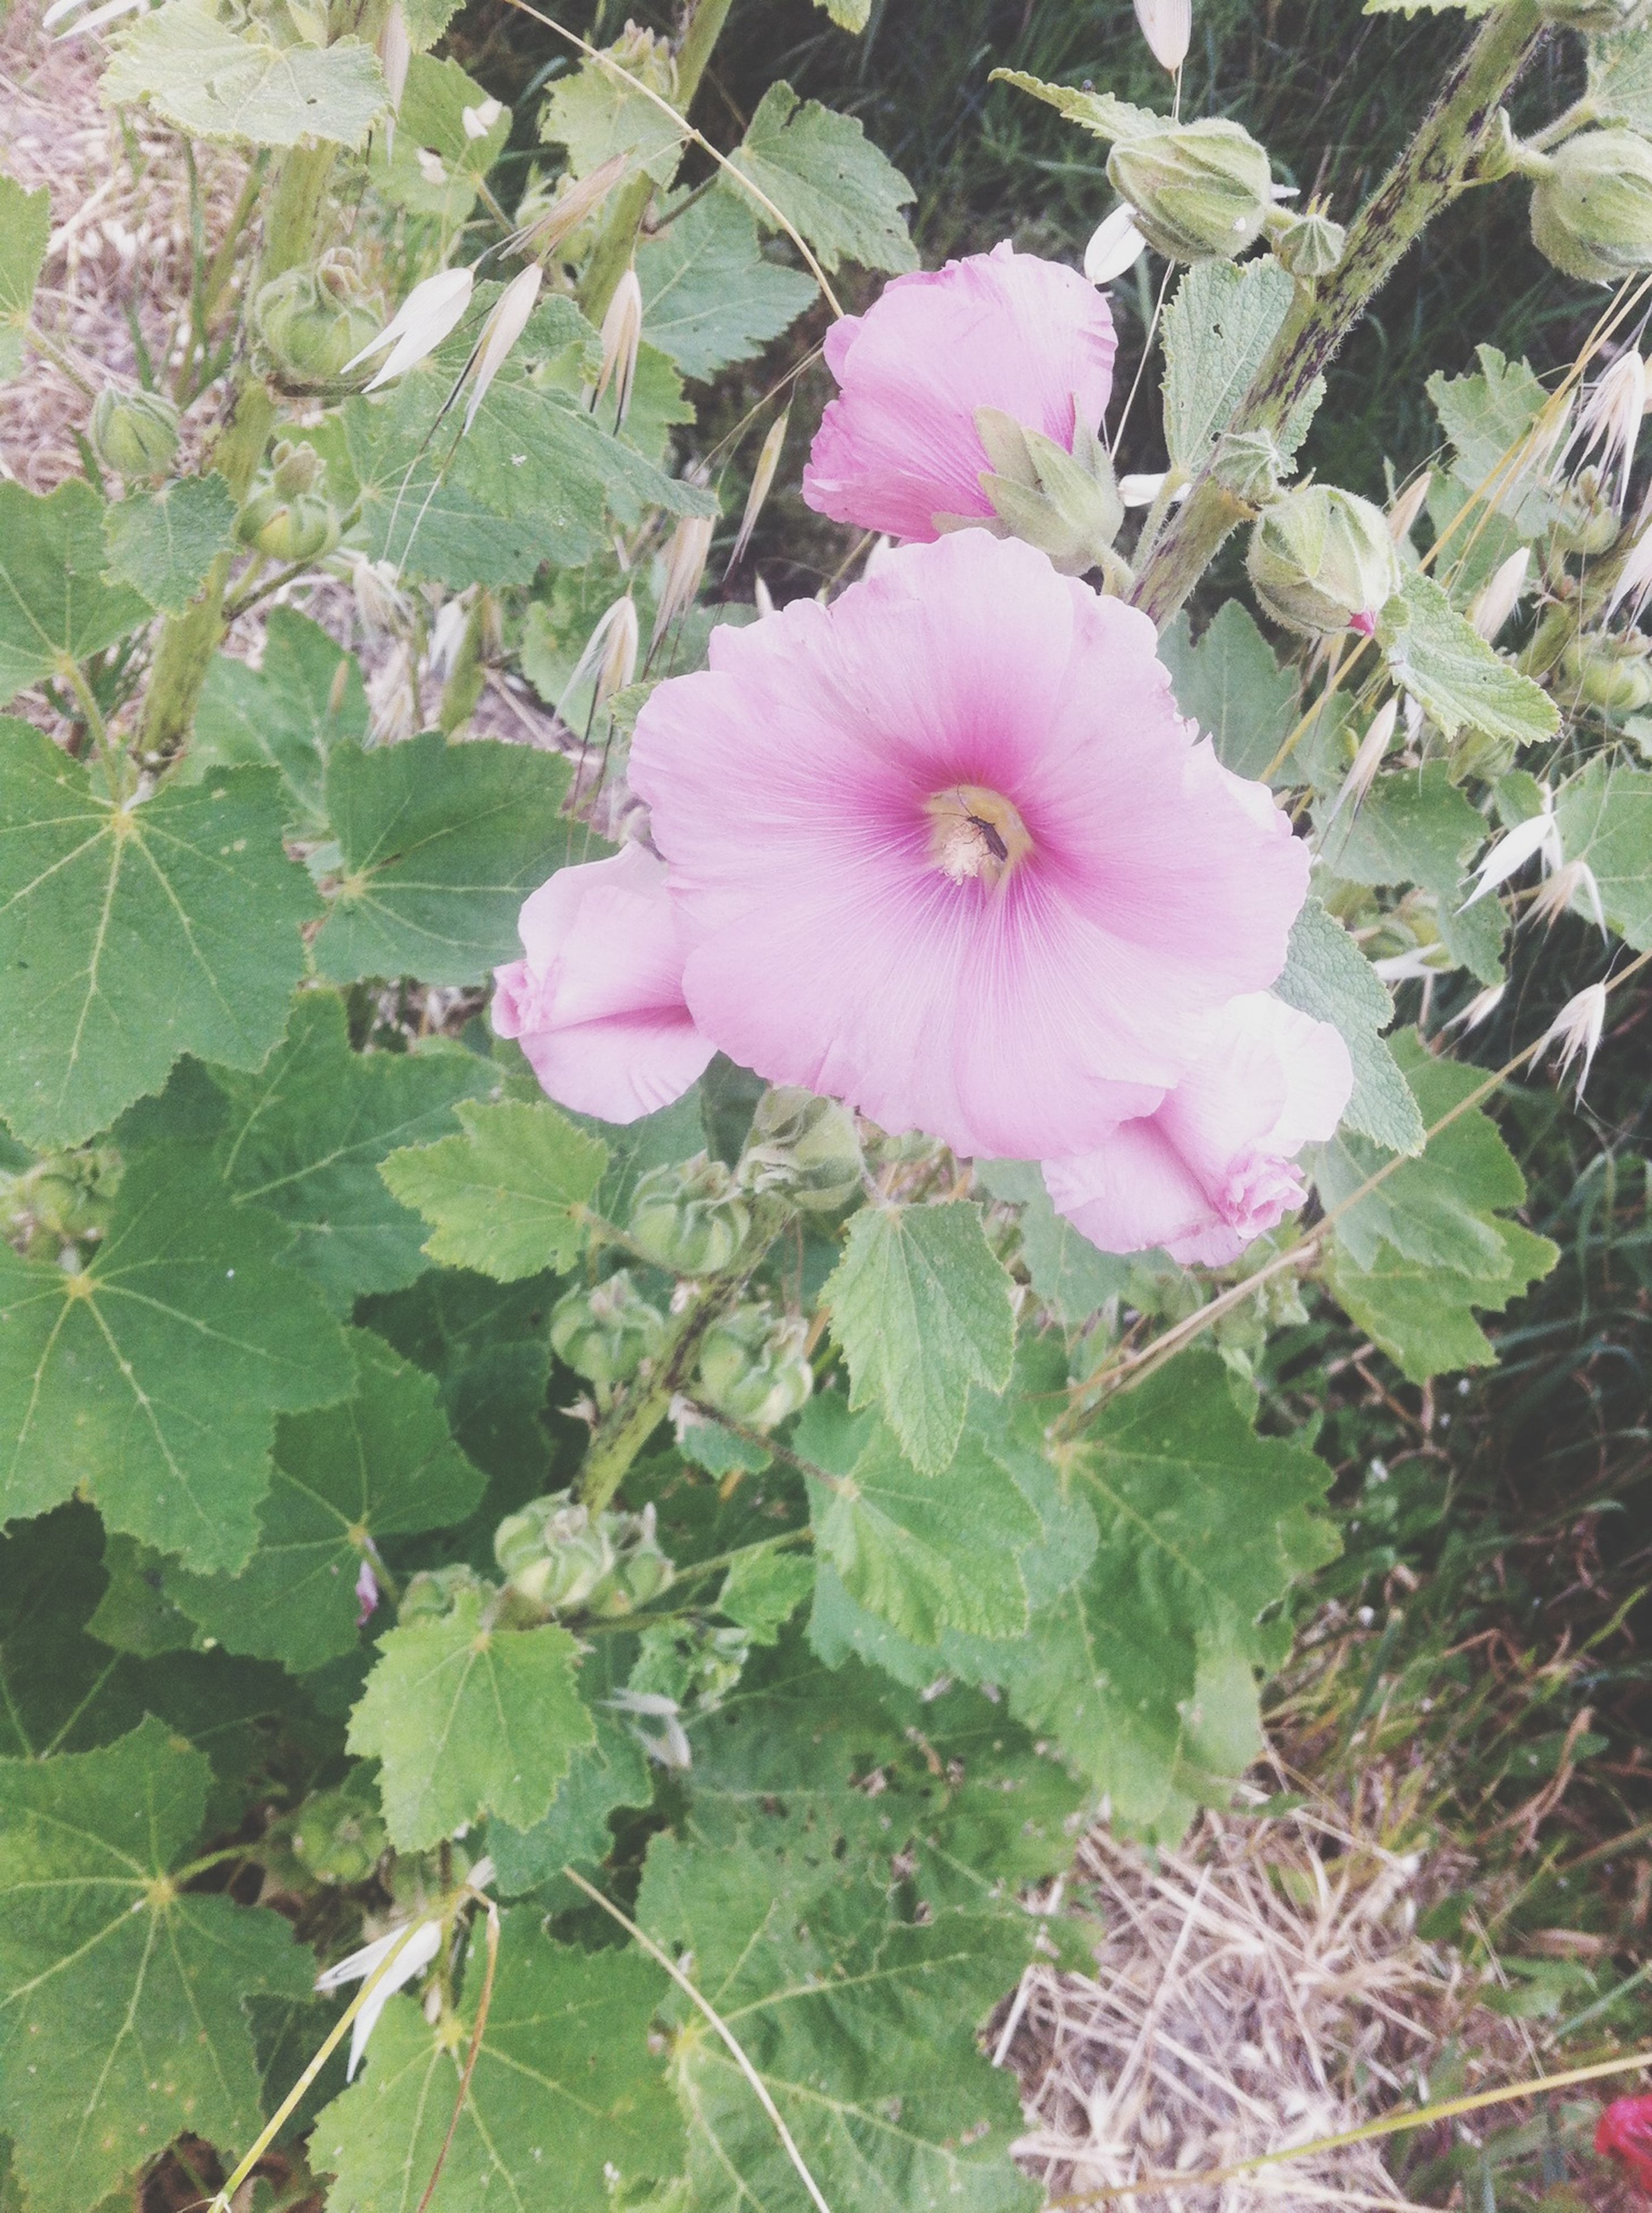 flower, freshness, growth, leaf, fragility, beauty in nature, plant, pink color, petal, nature, blooming, green color, flower head, close-up, high angle view, in bloom, day, outdoors, springtime, field